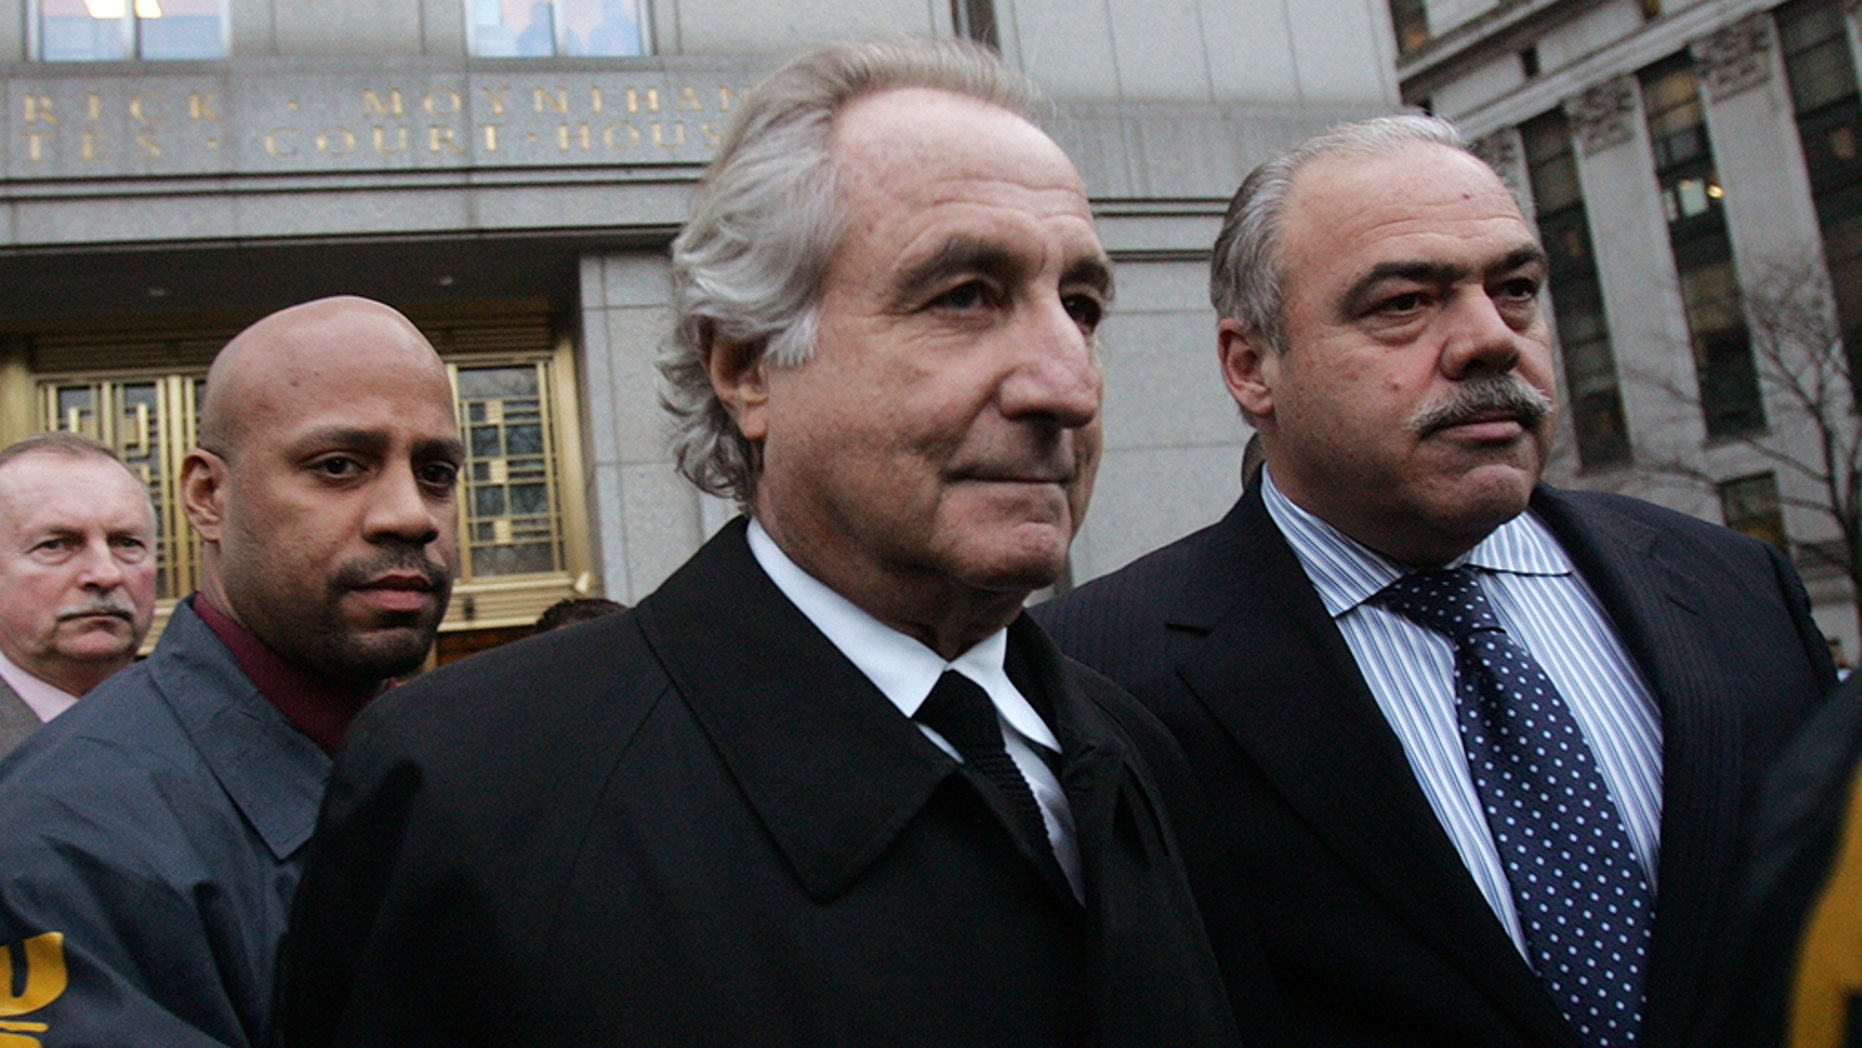 The Department of Justice on Thursday revealed that the Madoff Victim Fund (MVF) kicked off its third installment of issuing money, totaling to roughly $695 million, to people affected by the Bernie Madoff fraud scheme. Madoff (center) is seen walking out from Federal Court after a bail hearing in Manhattan in January 2009.